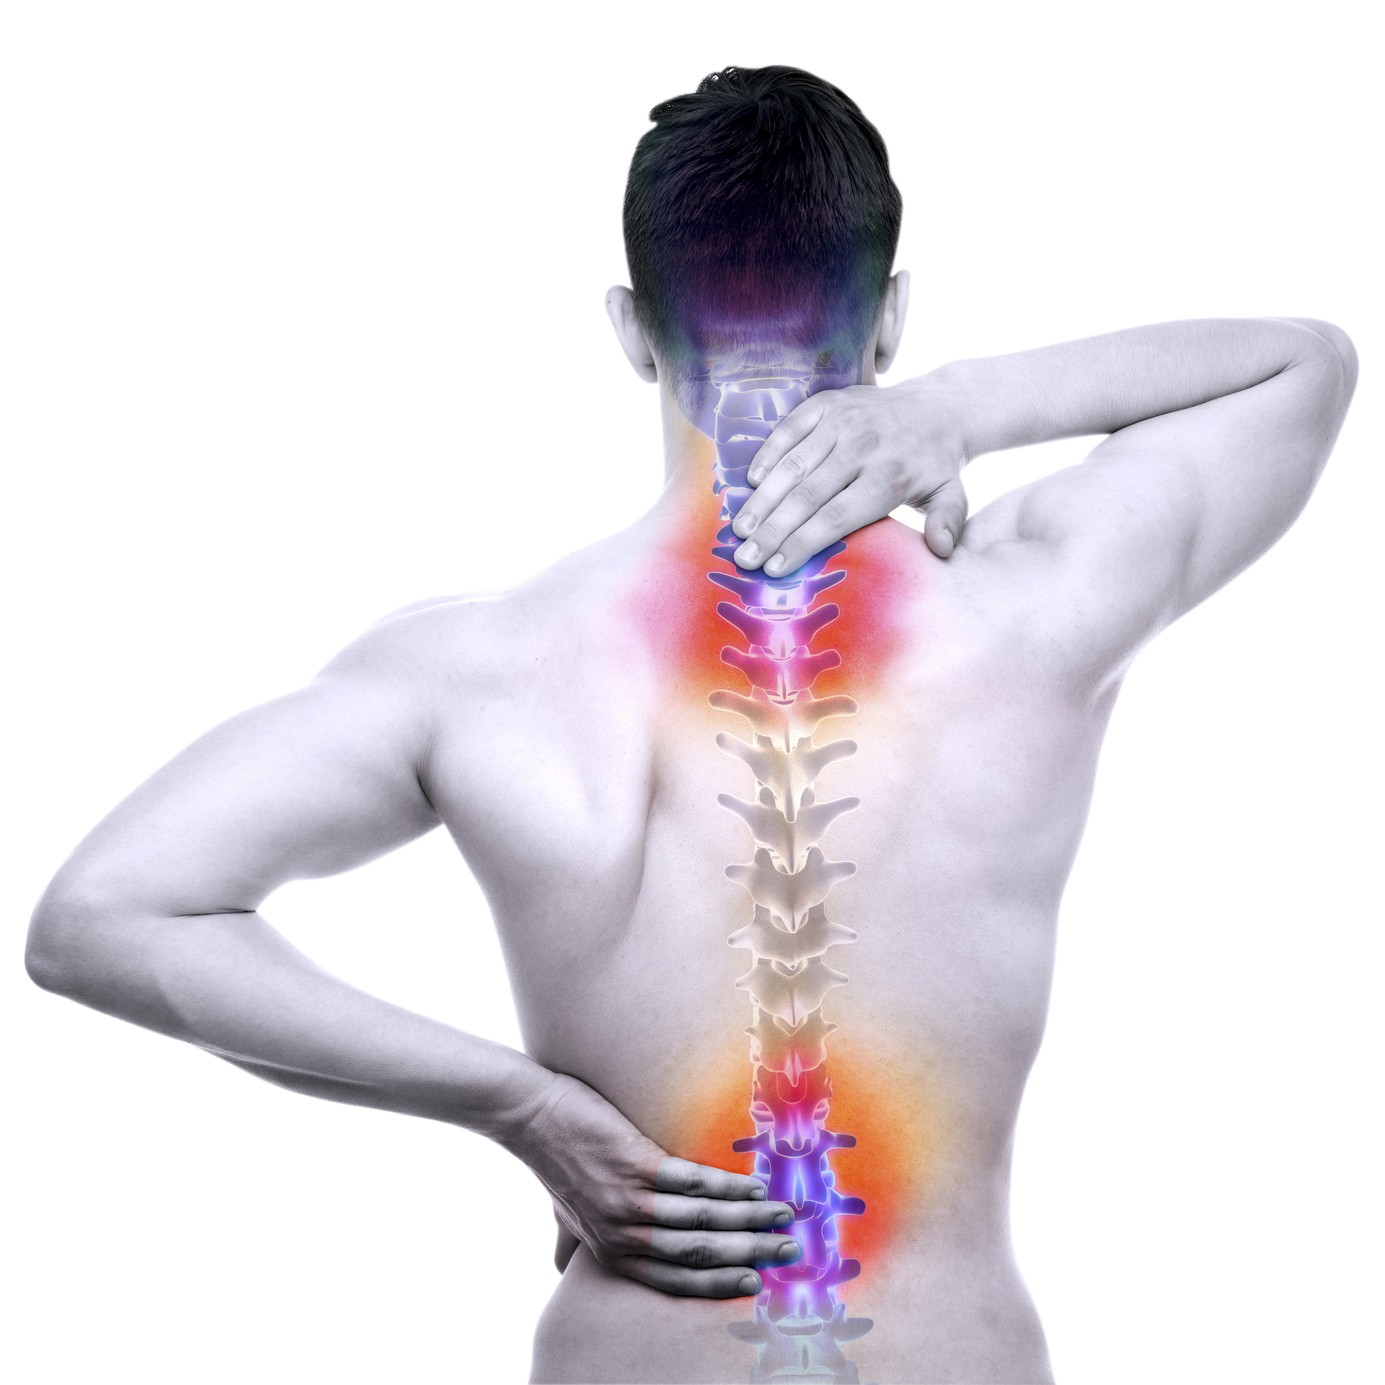 Title: Eligibility Criteria for Spine Surgery in India